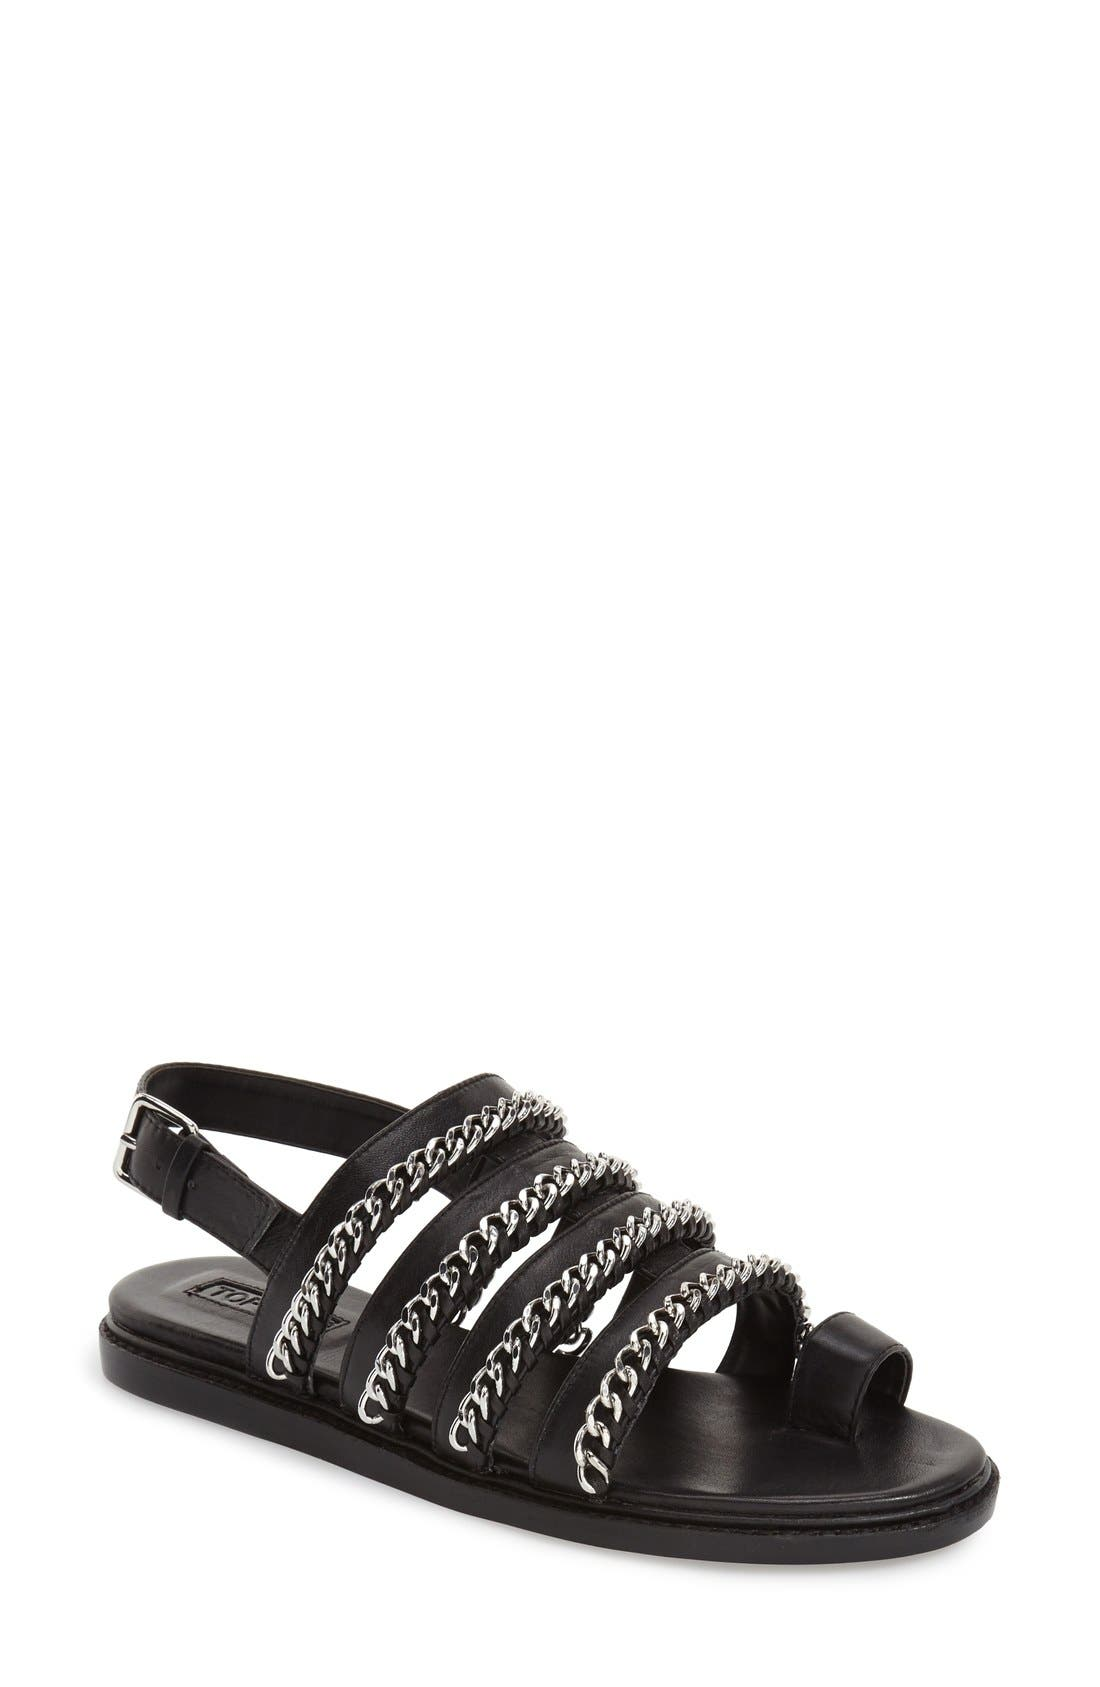 'Flying' Chain Strap Sandal,                             Main thumbnail 1, color,                             001